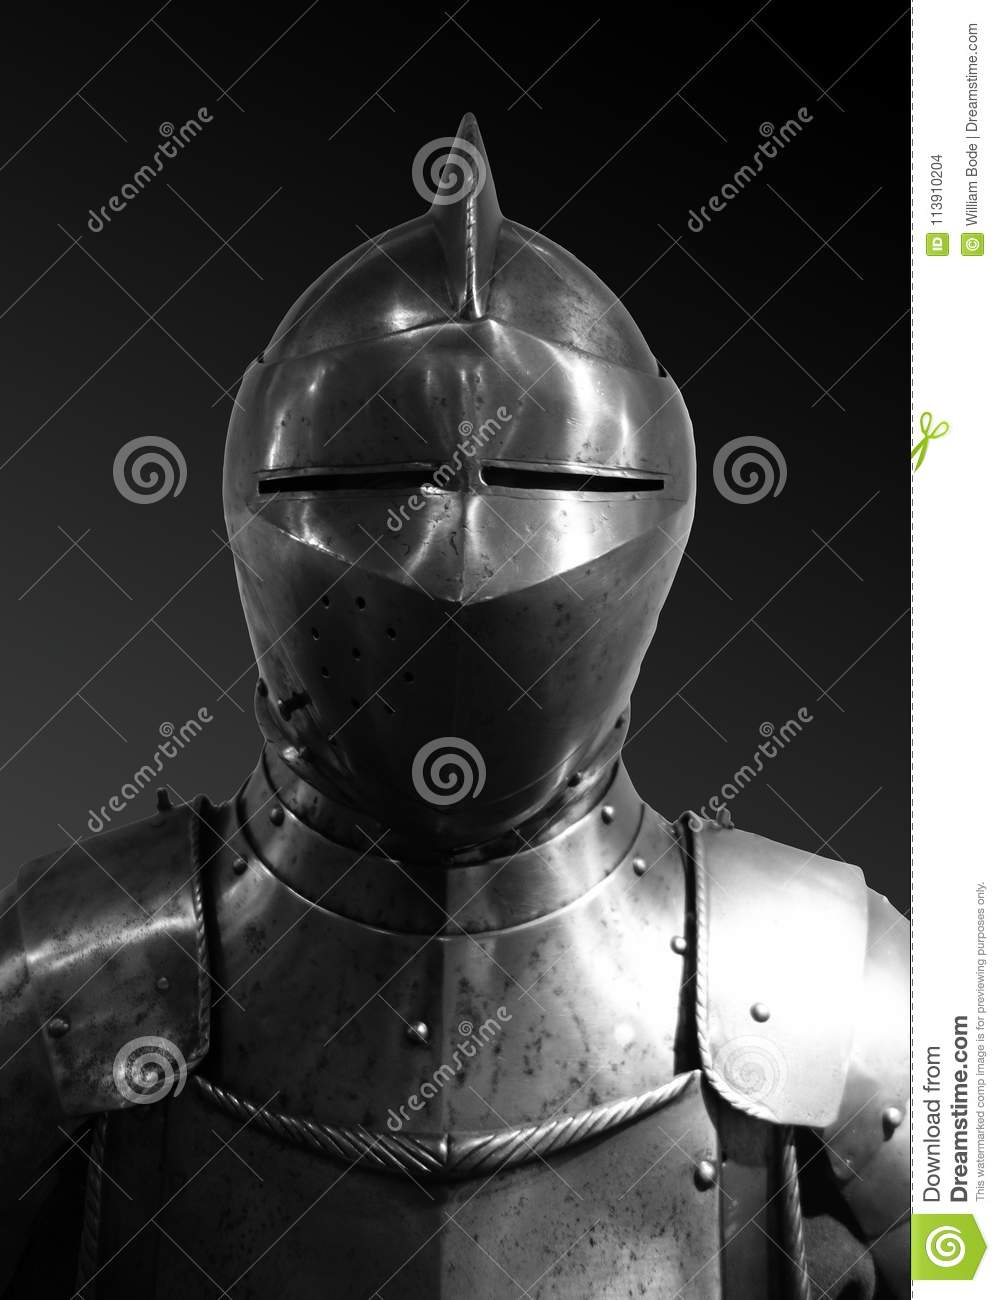 Front View Medieval Knights Armor Suit Helmet Stock Photo